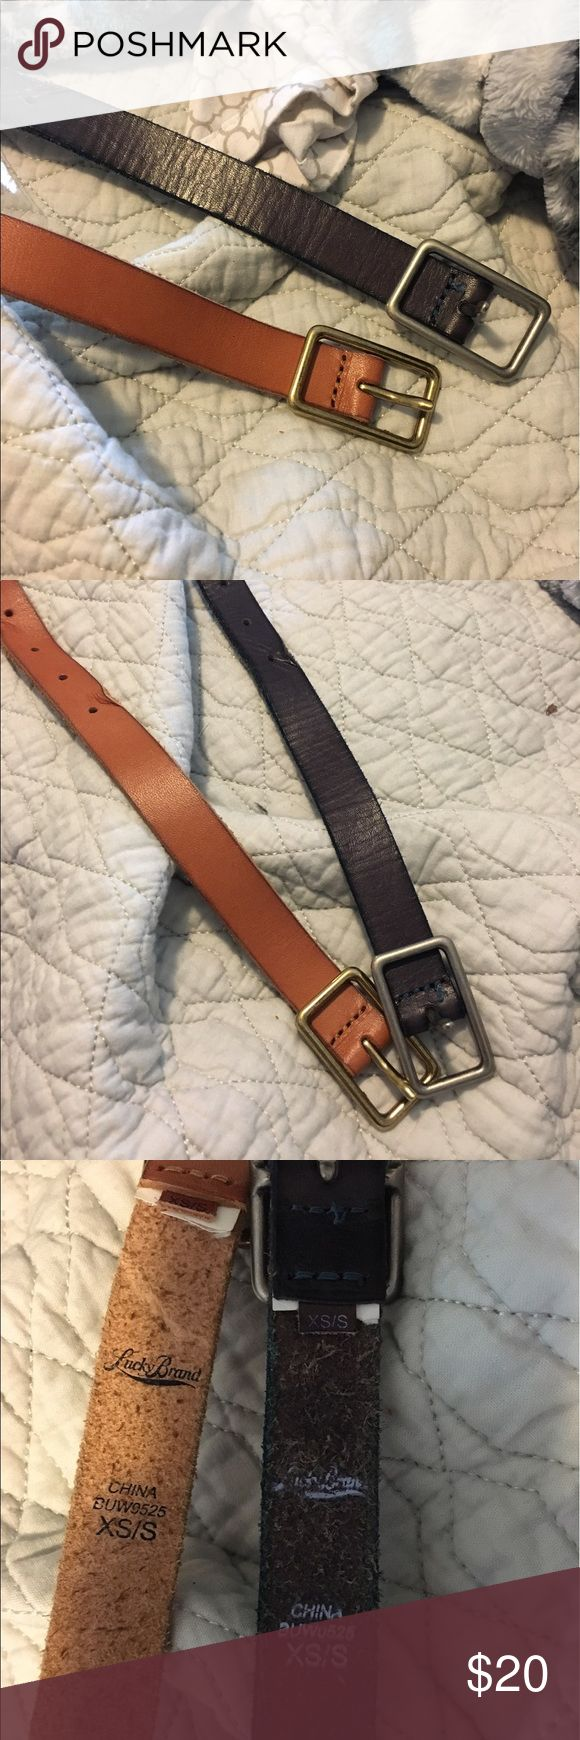 Lucky Brand belts - set of 2 Never worn Lucky Brand leather belts! If you want just one , leave me a comment! Size XS/S. Offers always welcomed !!! Lucky Brand Accessories Belts